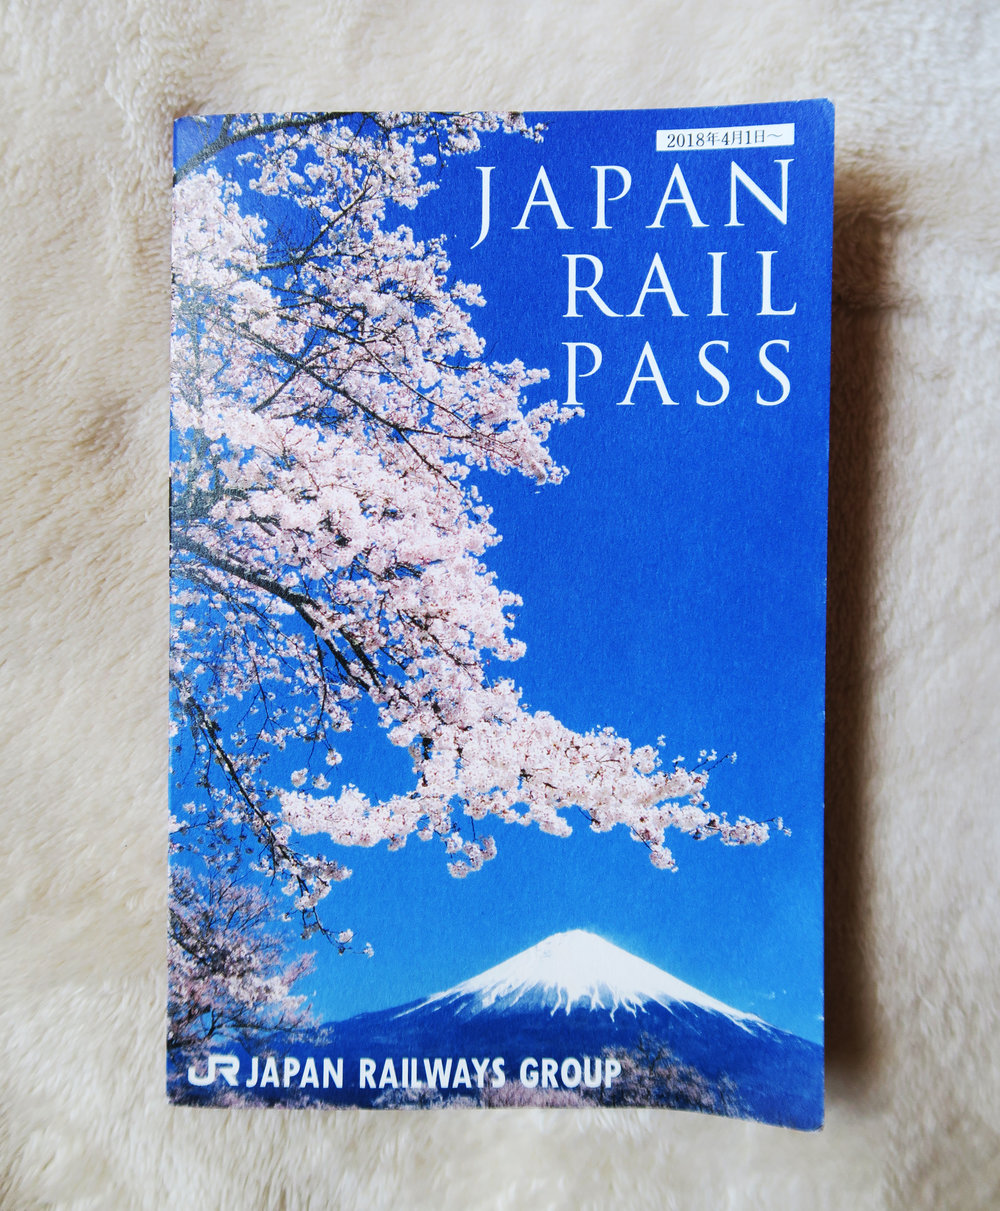 What a Japan rail pass looks like